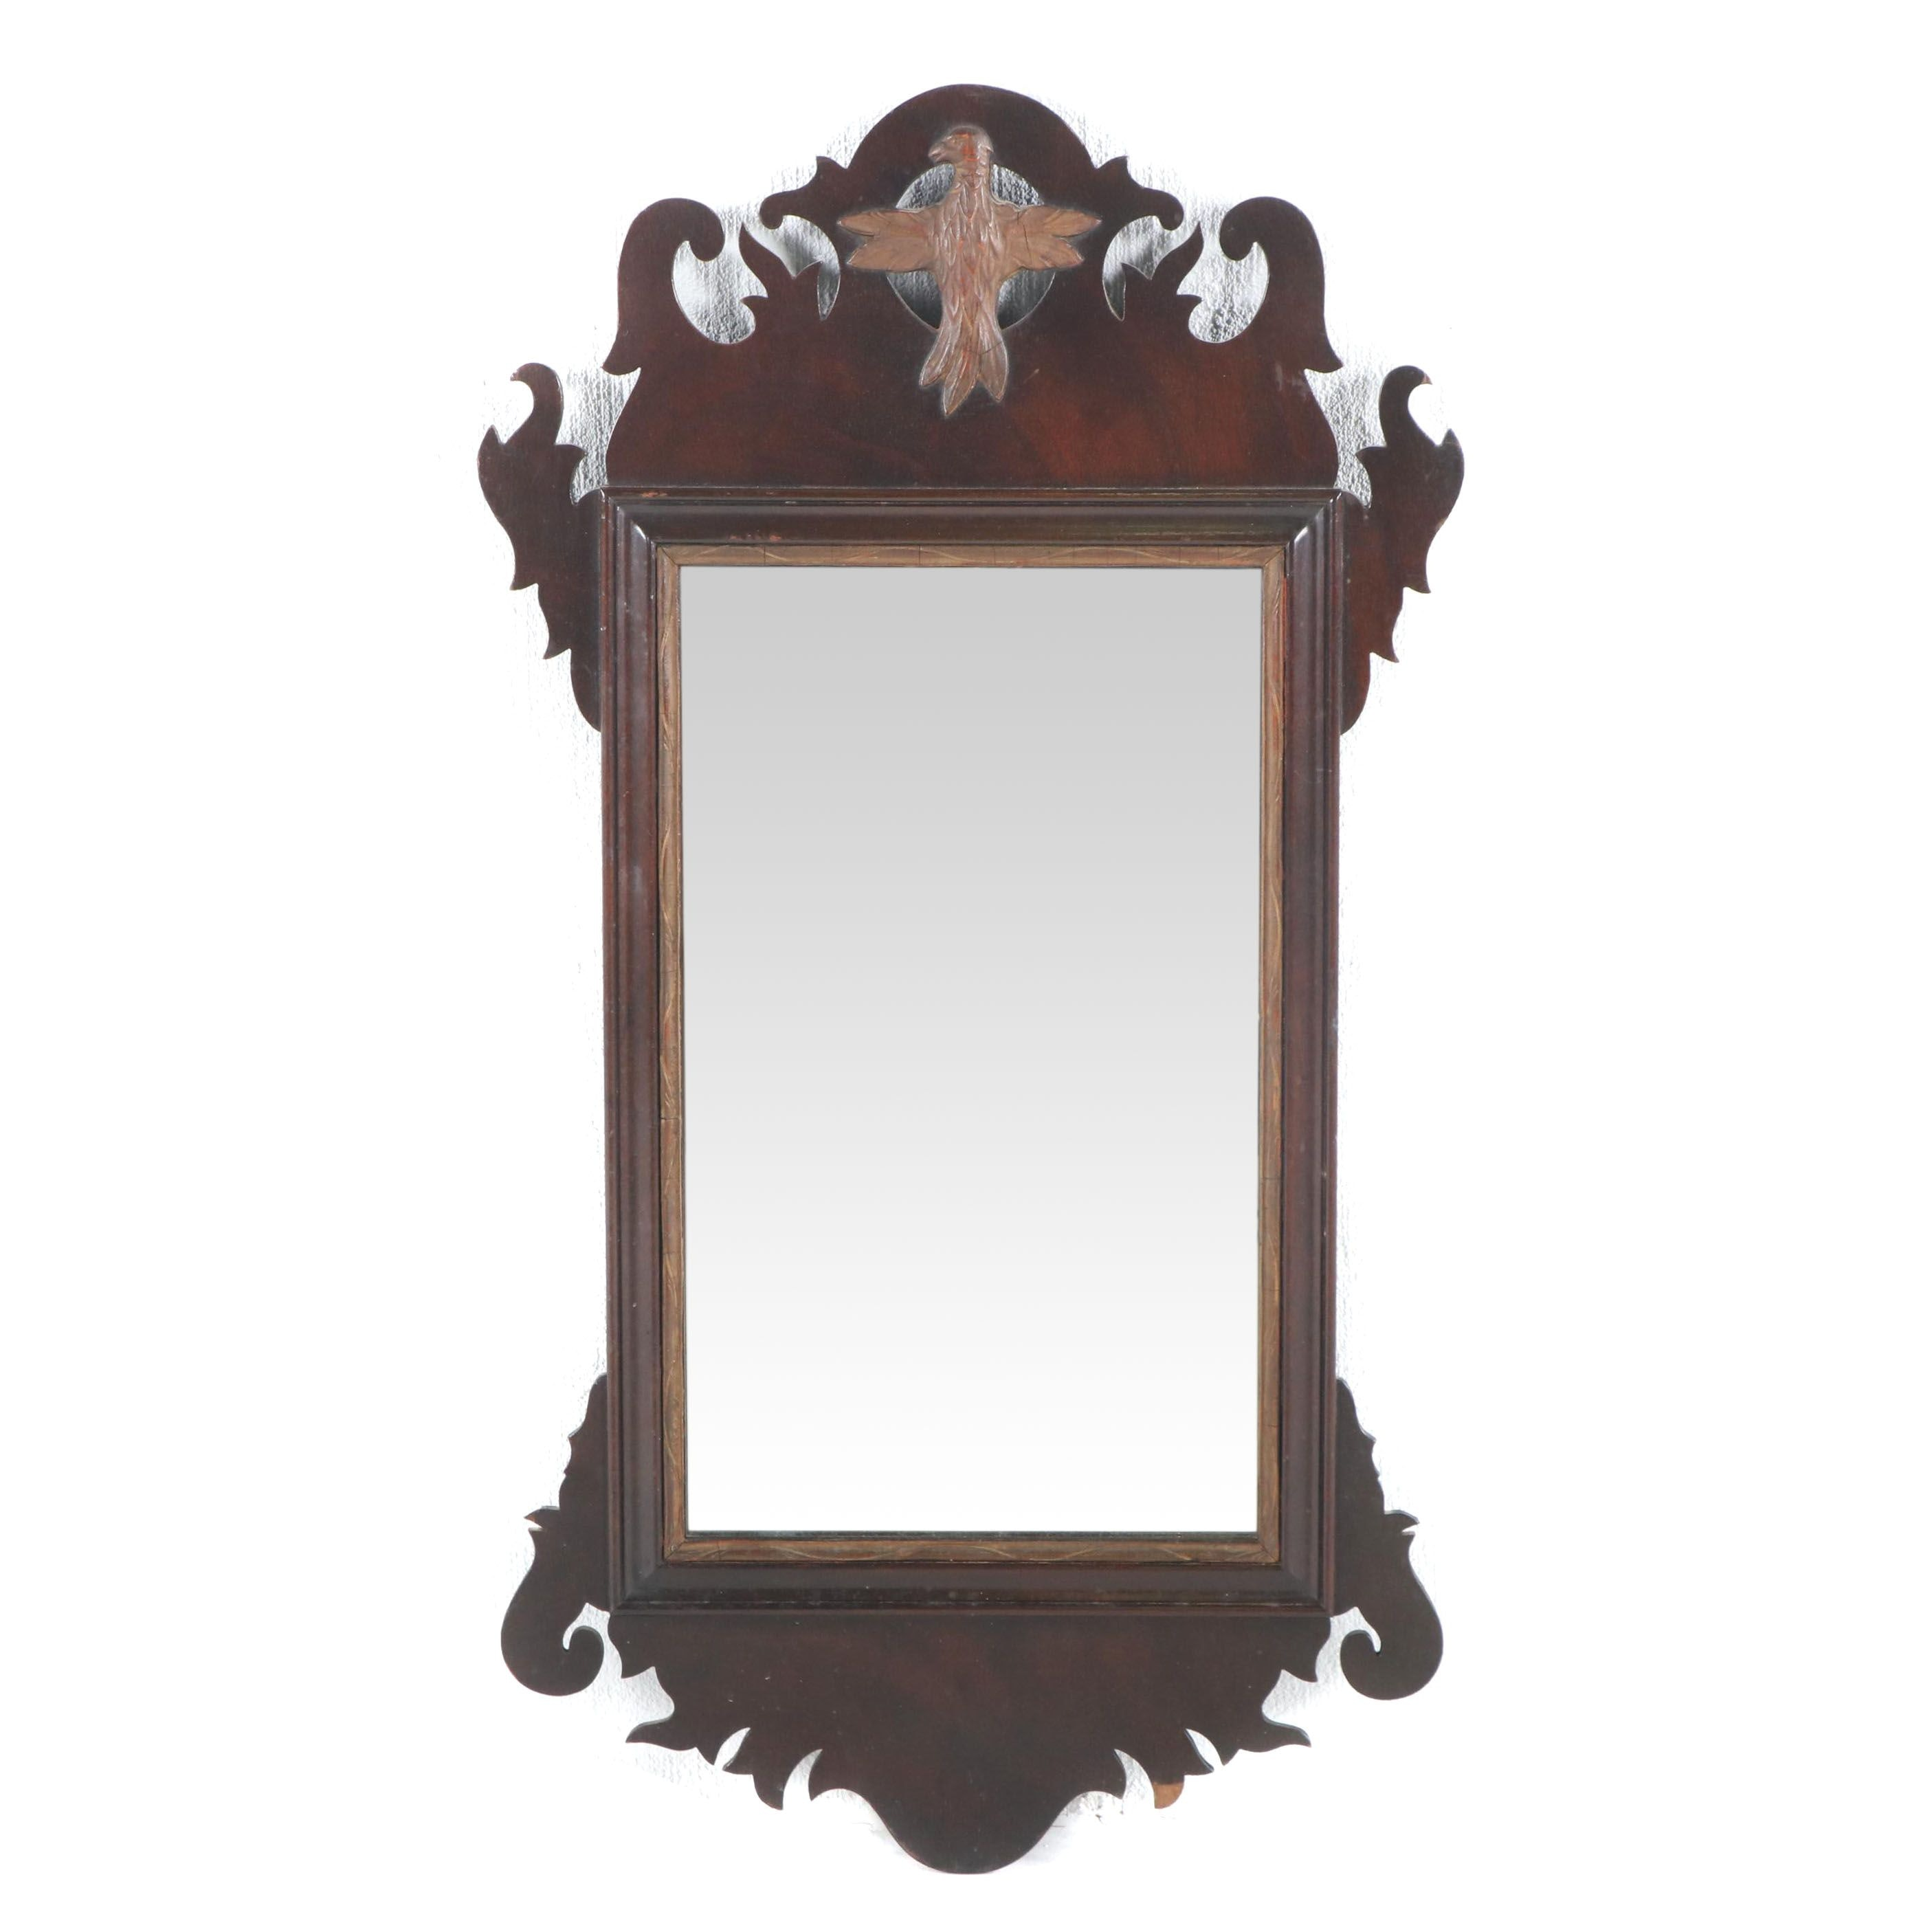 Federal Style Wall Mirror, circa 1940s